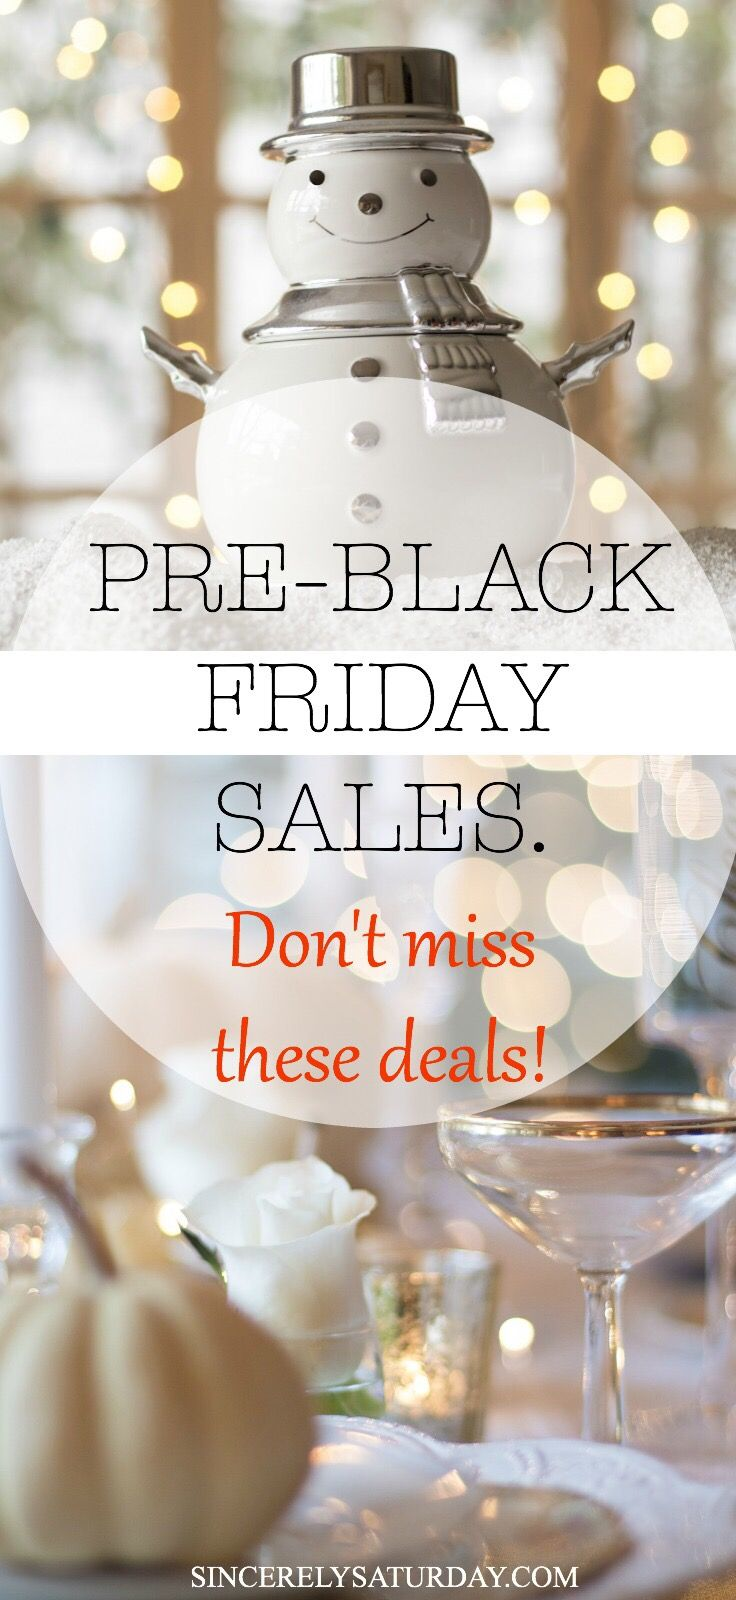 Think all the good deals are next week? Think again. The real practical things are on sale now just in time for Thanksgiving. Don't miss buying new towels for your uncle Marty to destroy! #sale #thanksgiving #blackfirday #deal #deals #good